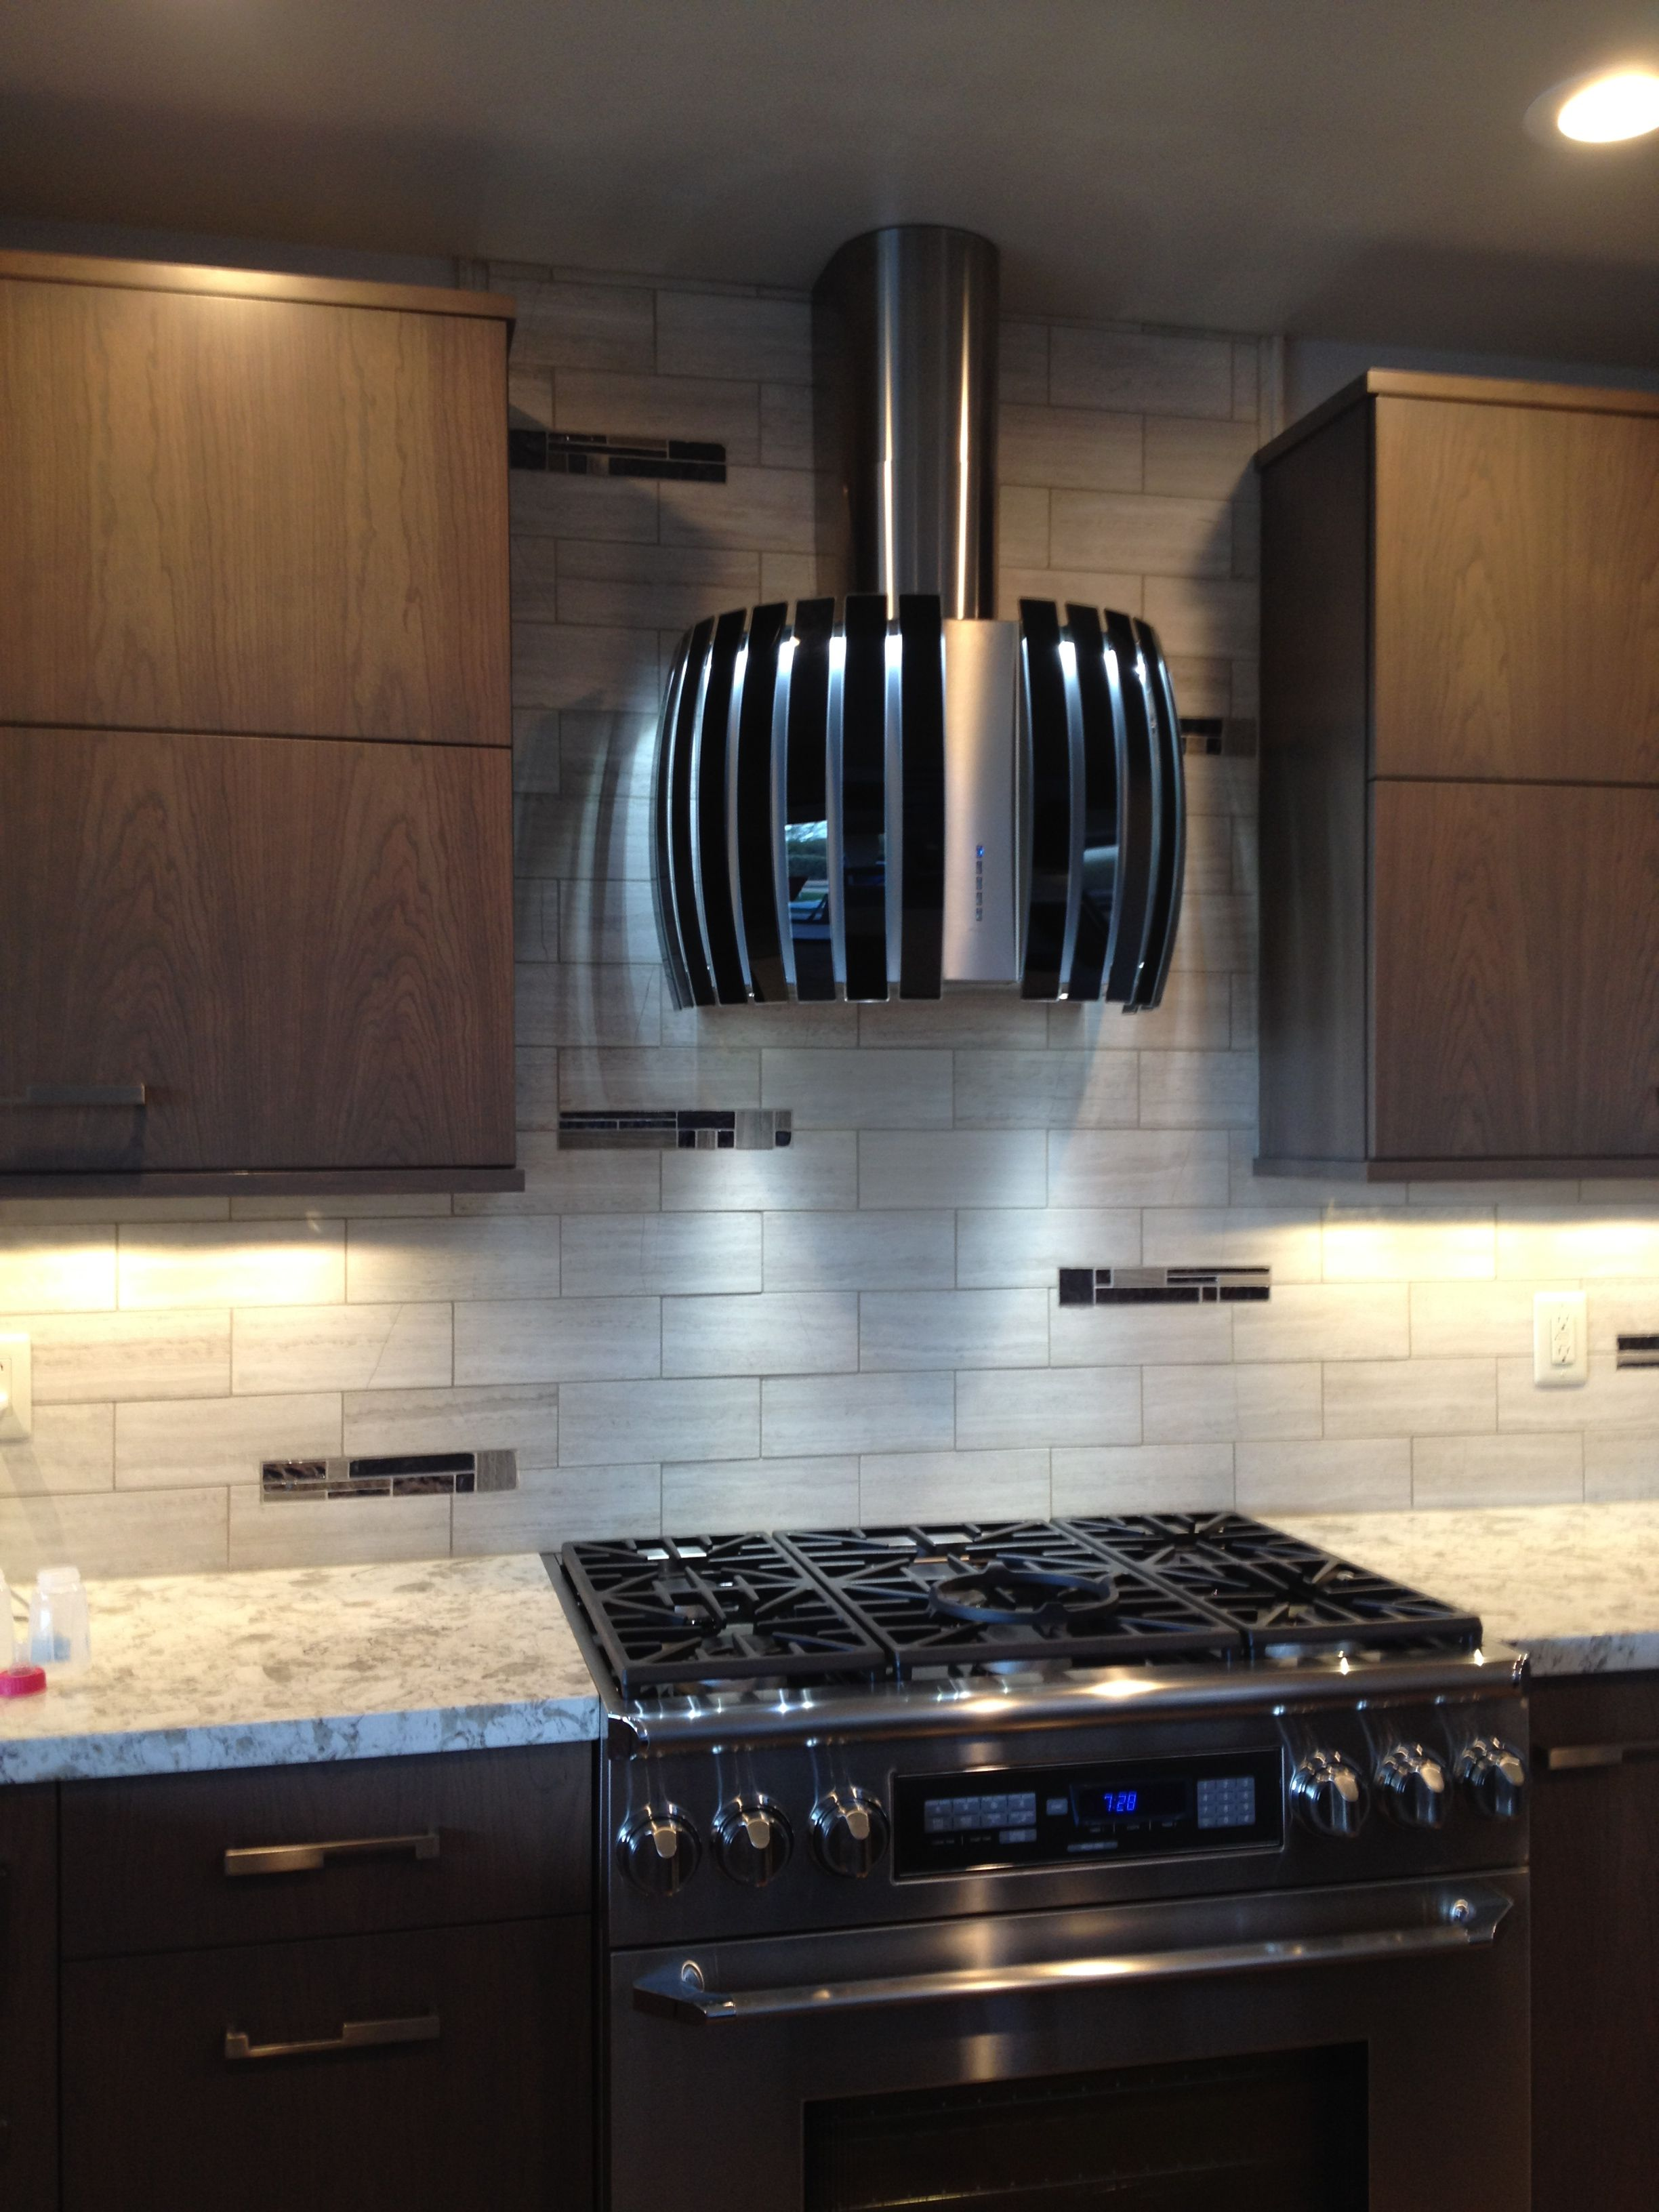 Mosaicmonday Features A Gorgeous Installation By Canyoncabinetry